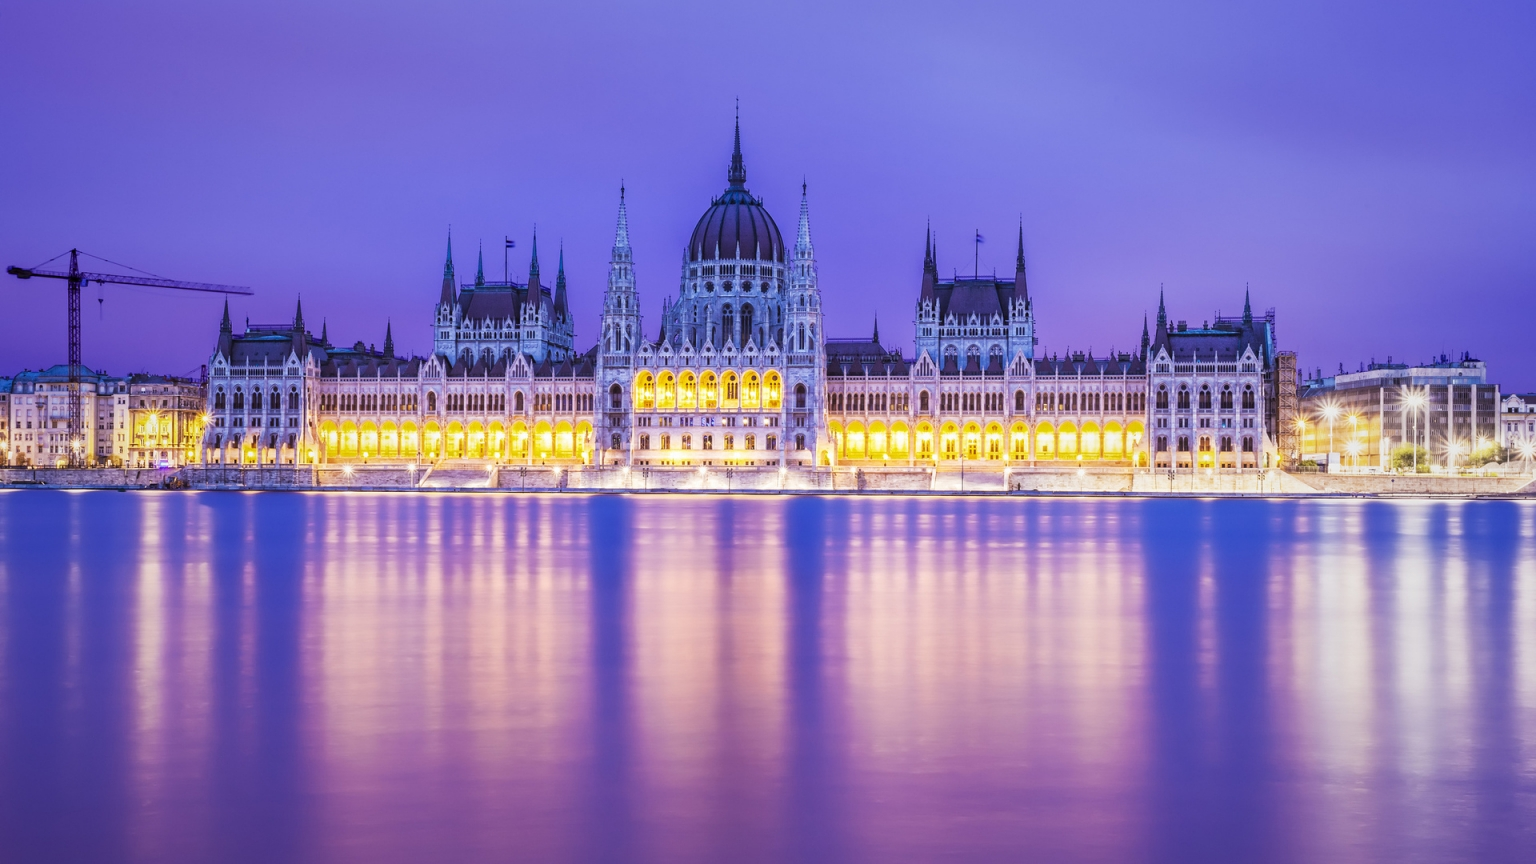 Budapest Parliament Building for 1536 x 864 HDTV resolution